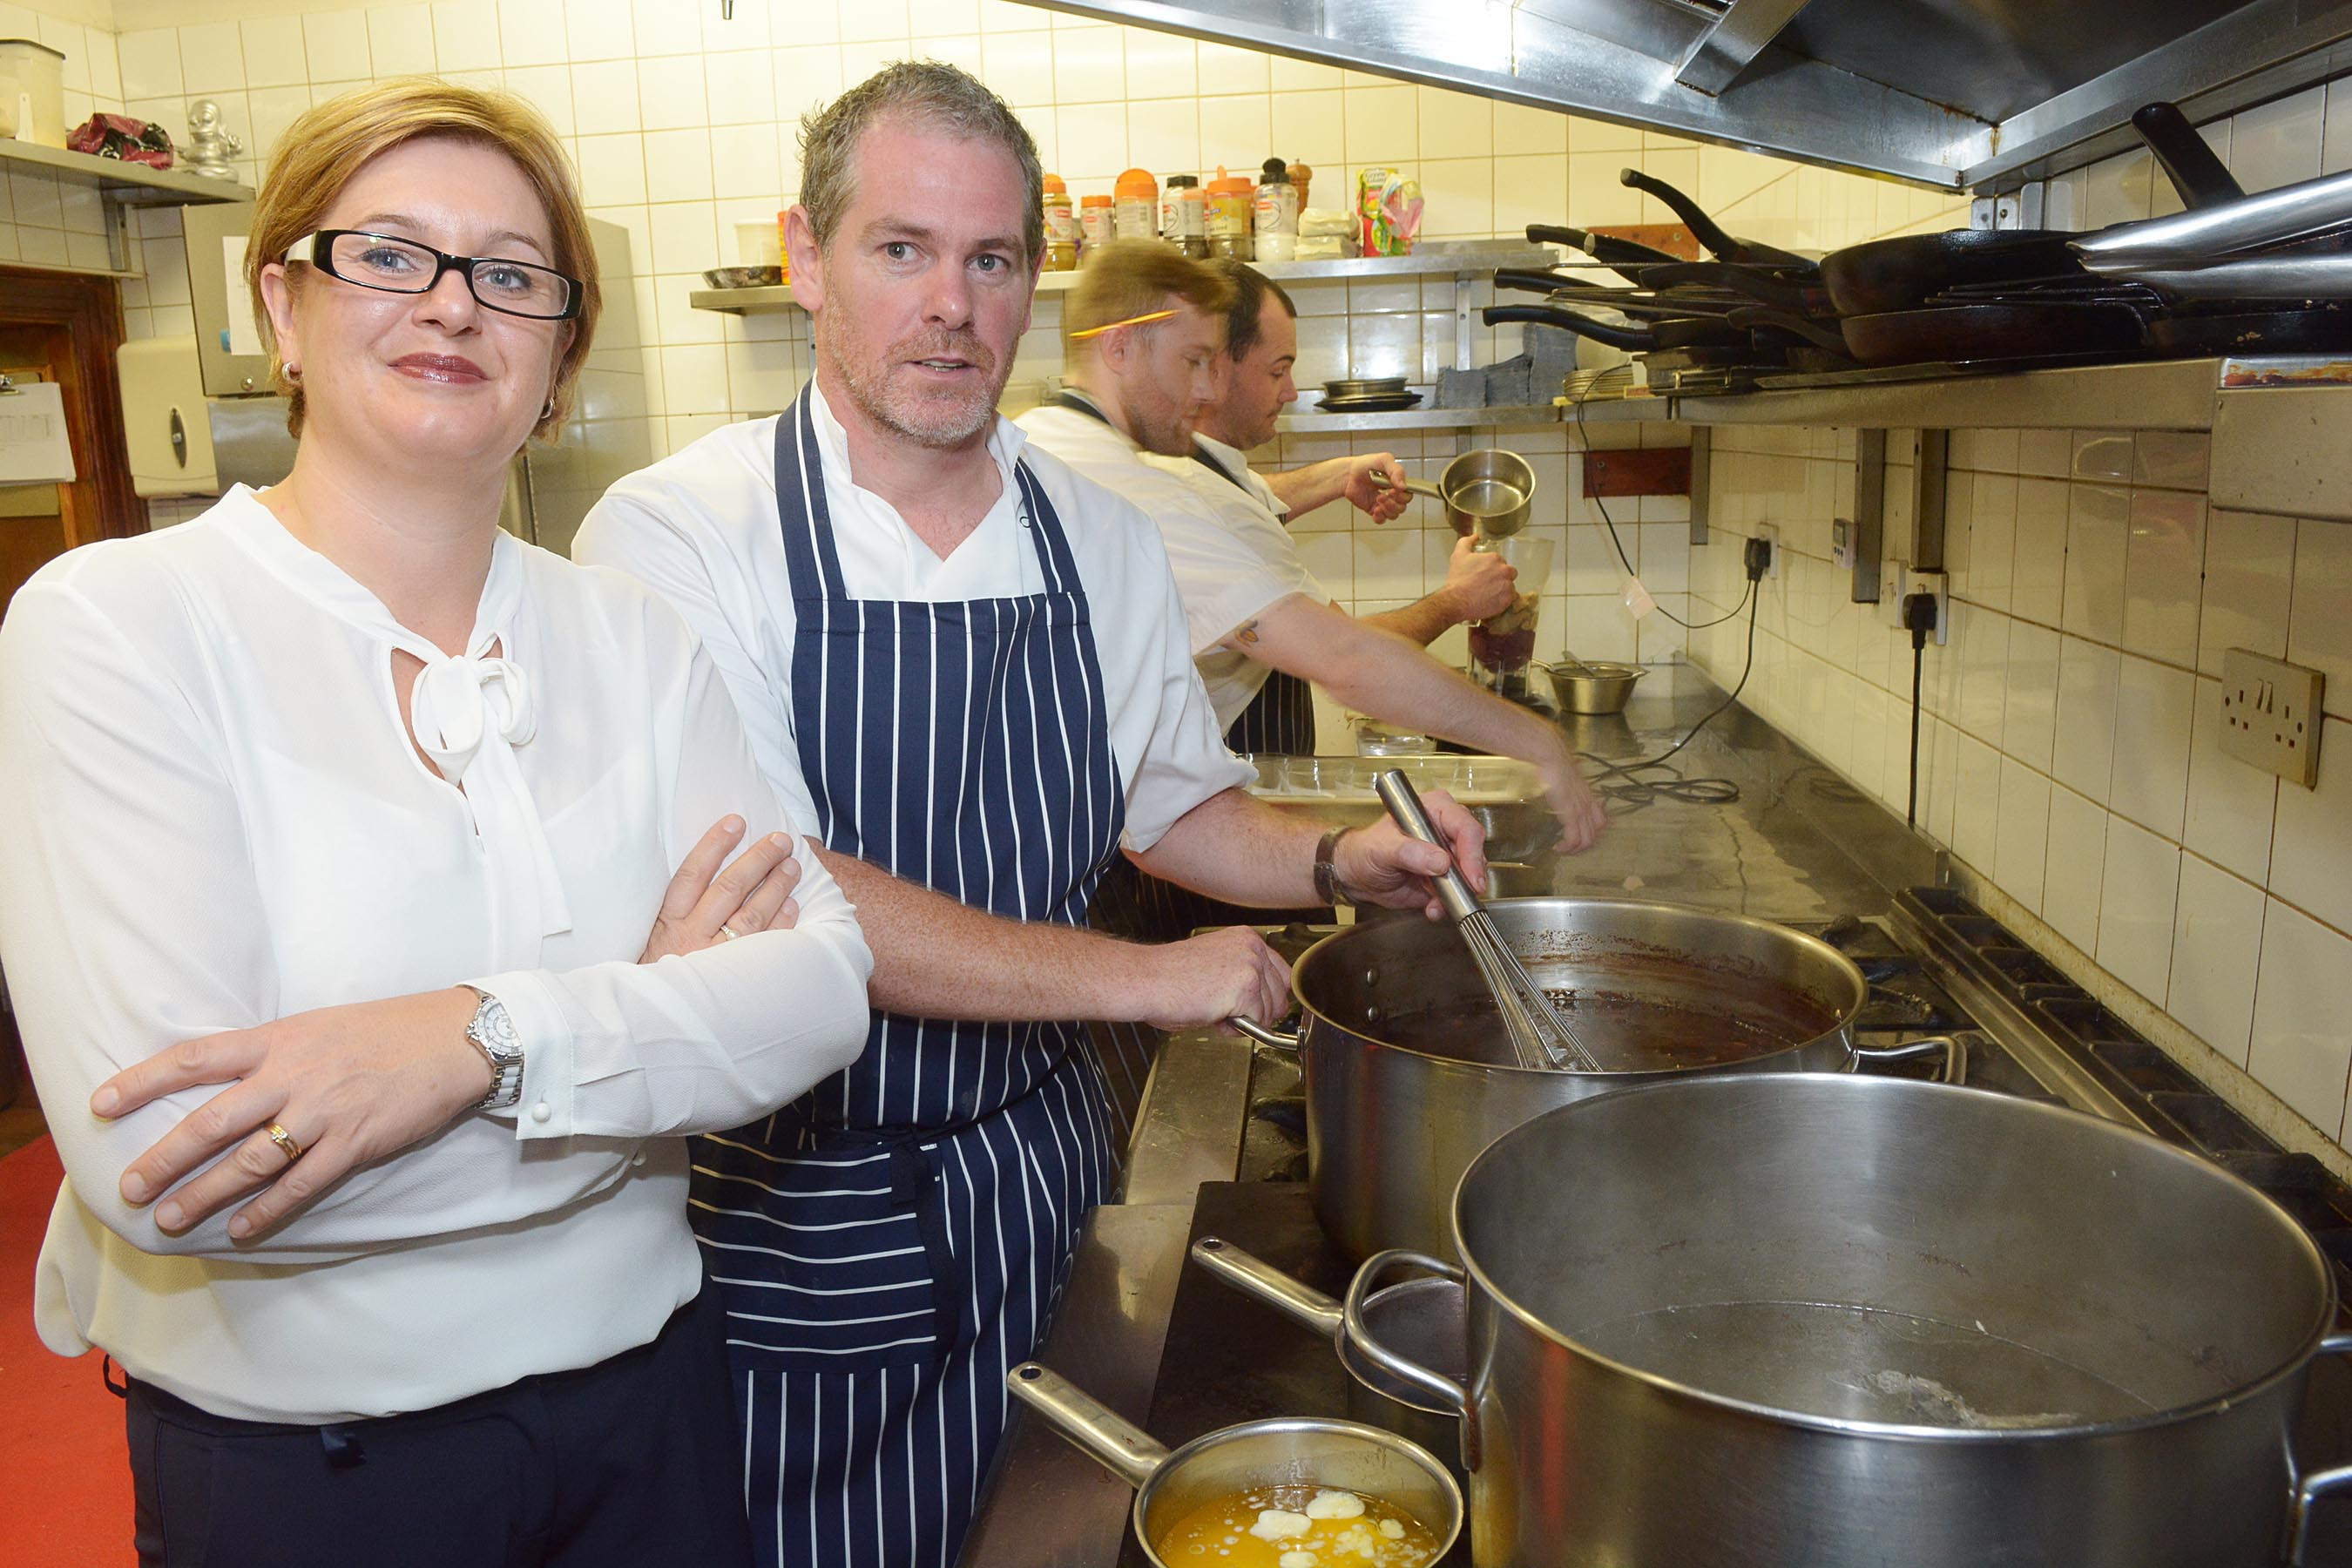 Top Cork French Restaurant raises money for Simon Community